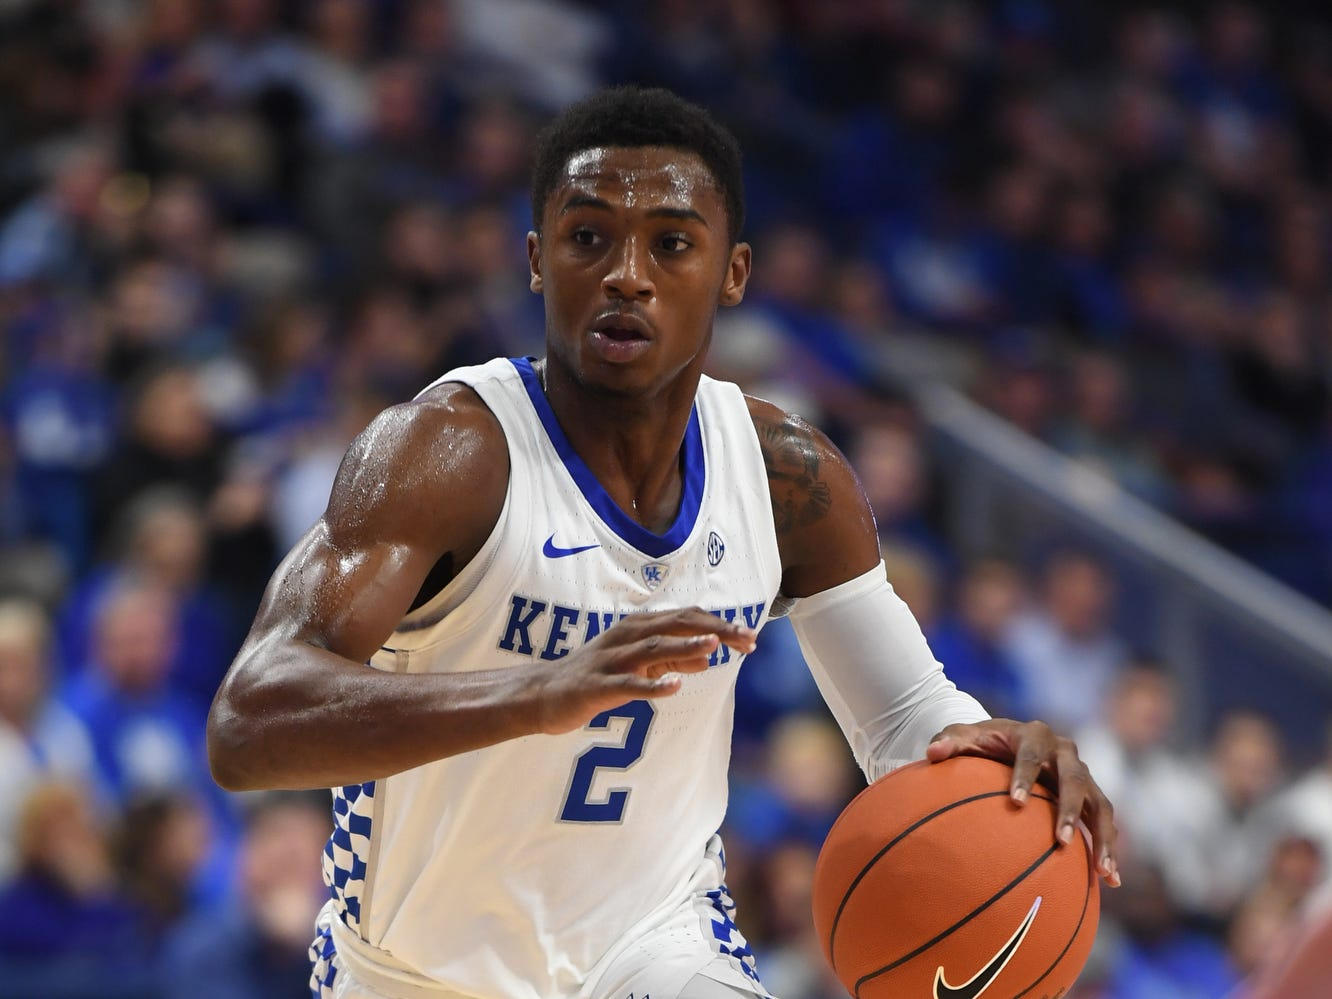 Ashton Hagans drives with the ball during the University of Kentucky  basketball game against Indiana University of Pennsylvania at Rupp Arena on Friday, Nov. 2, 2018.